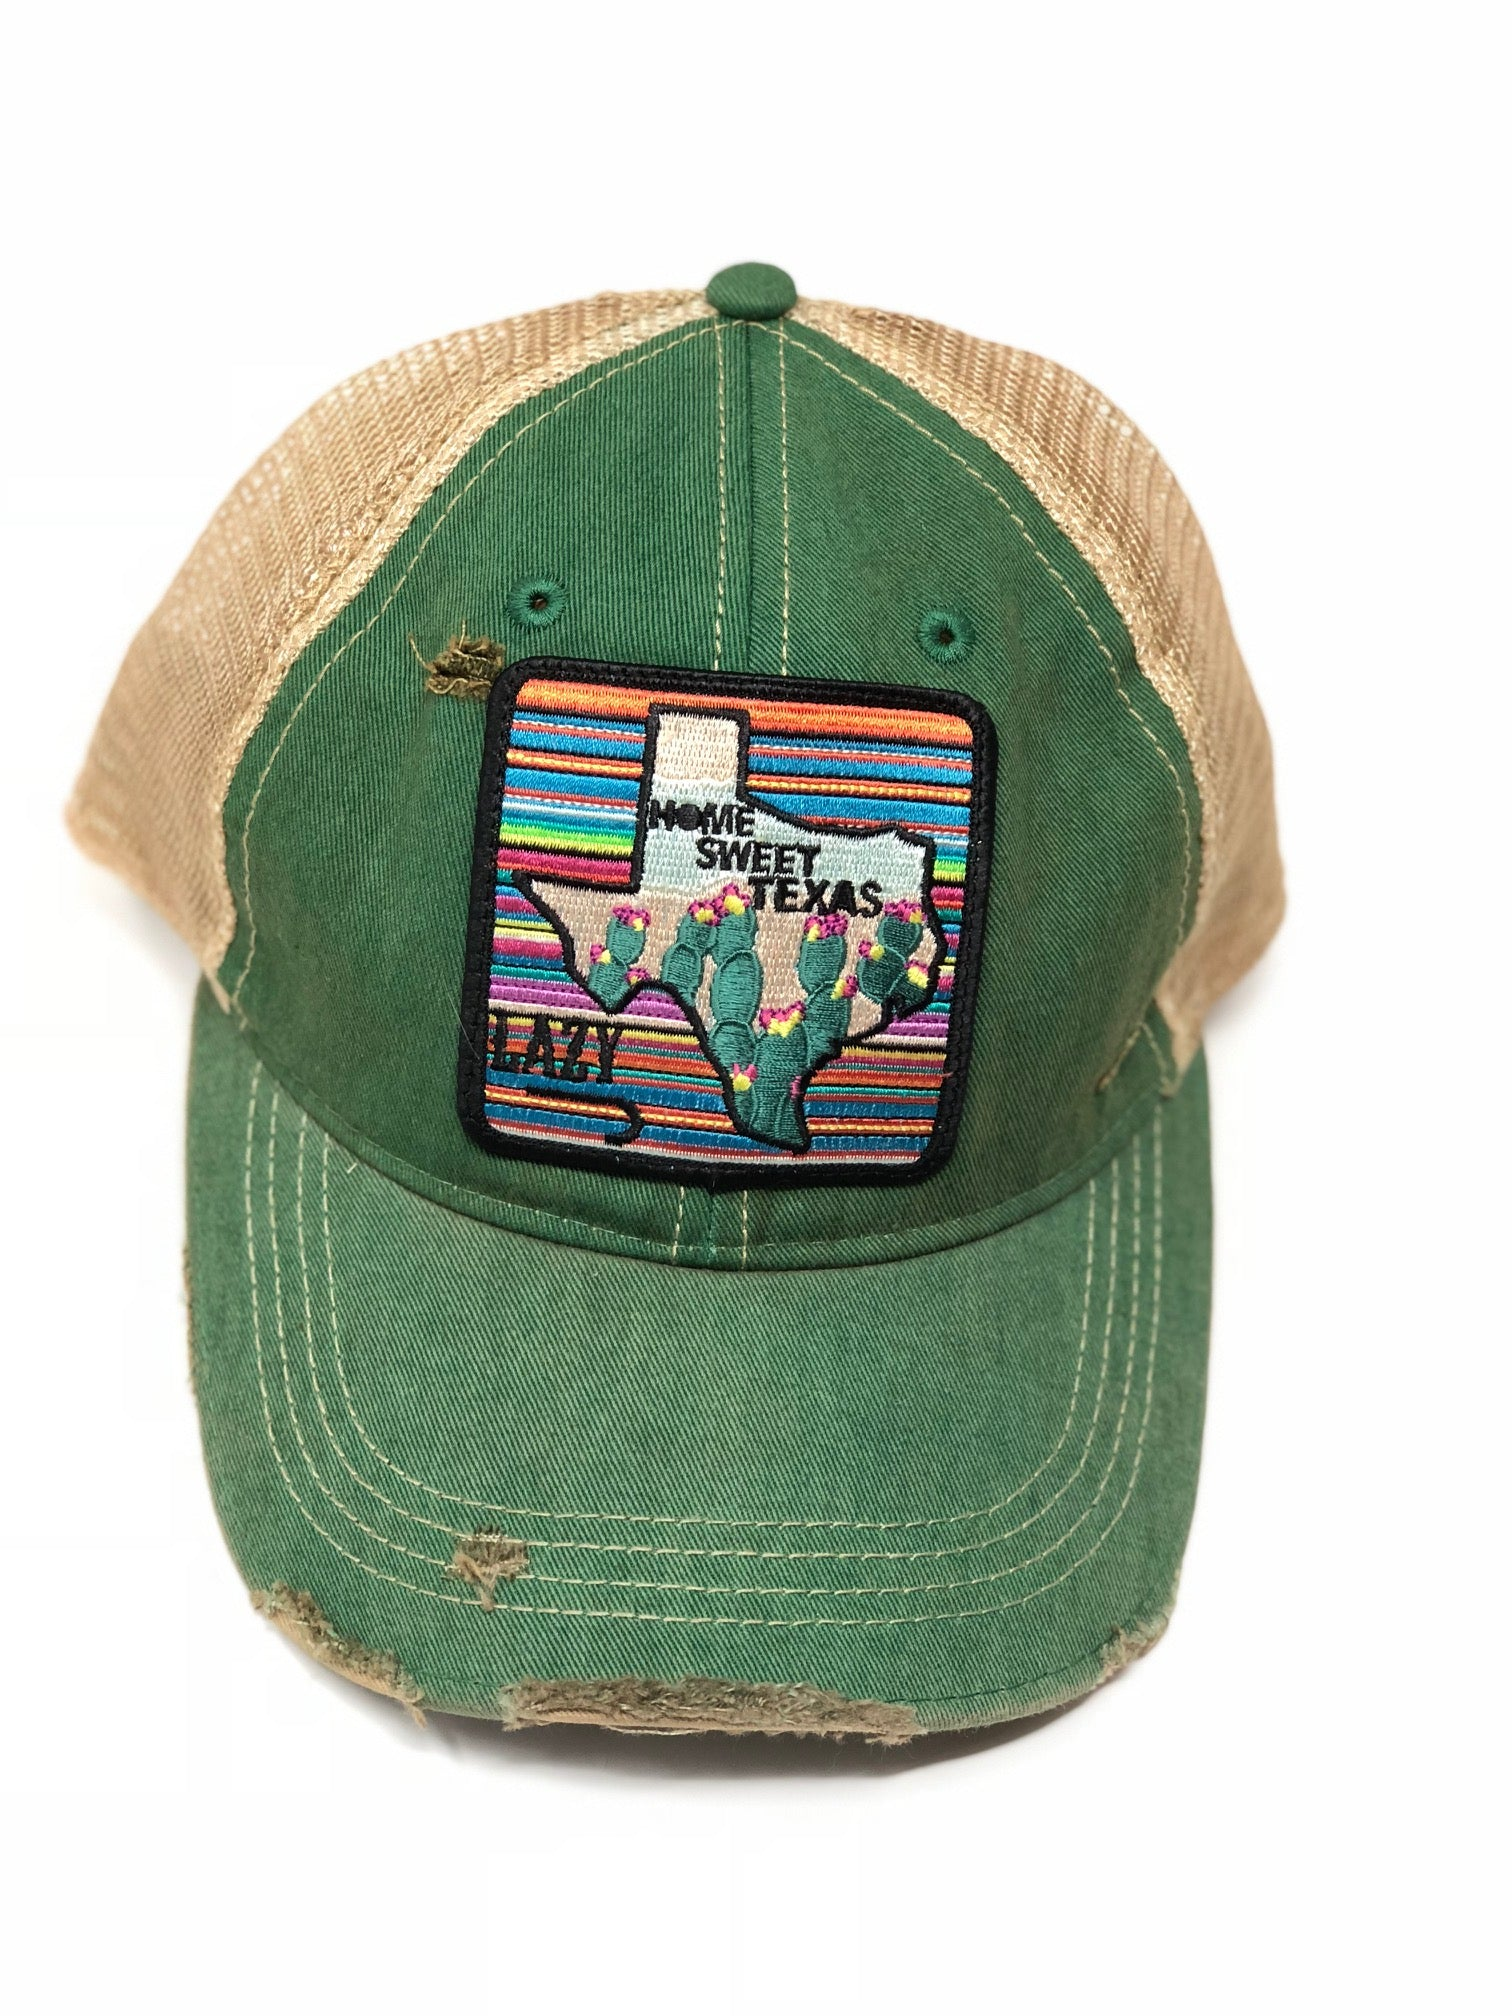 Lazy J Kelly Green & Tan Unstructured Home Sweet Texas Patch Cap